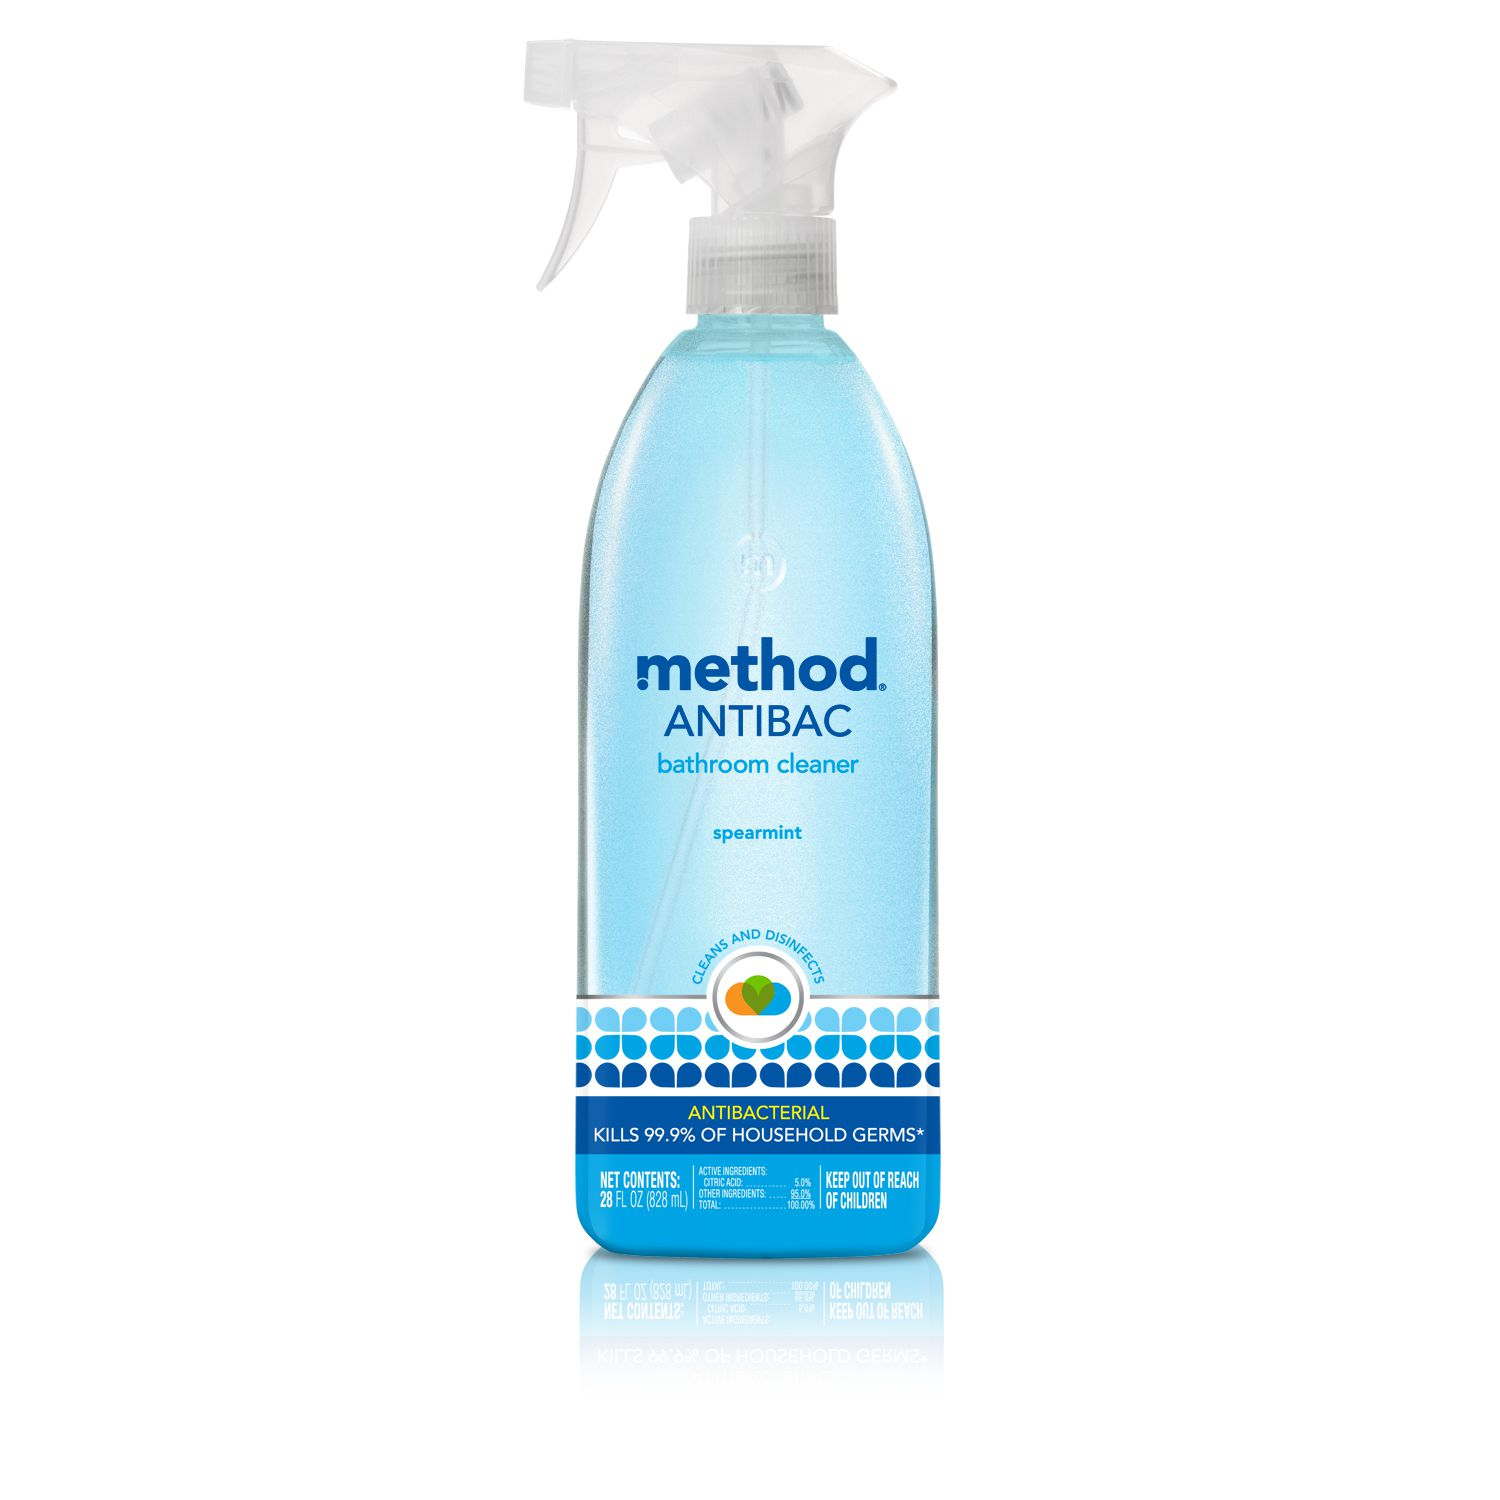 The Top EcoFriendly Bathroom Cleaners - Method bathroom cleaner ingredients